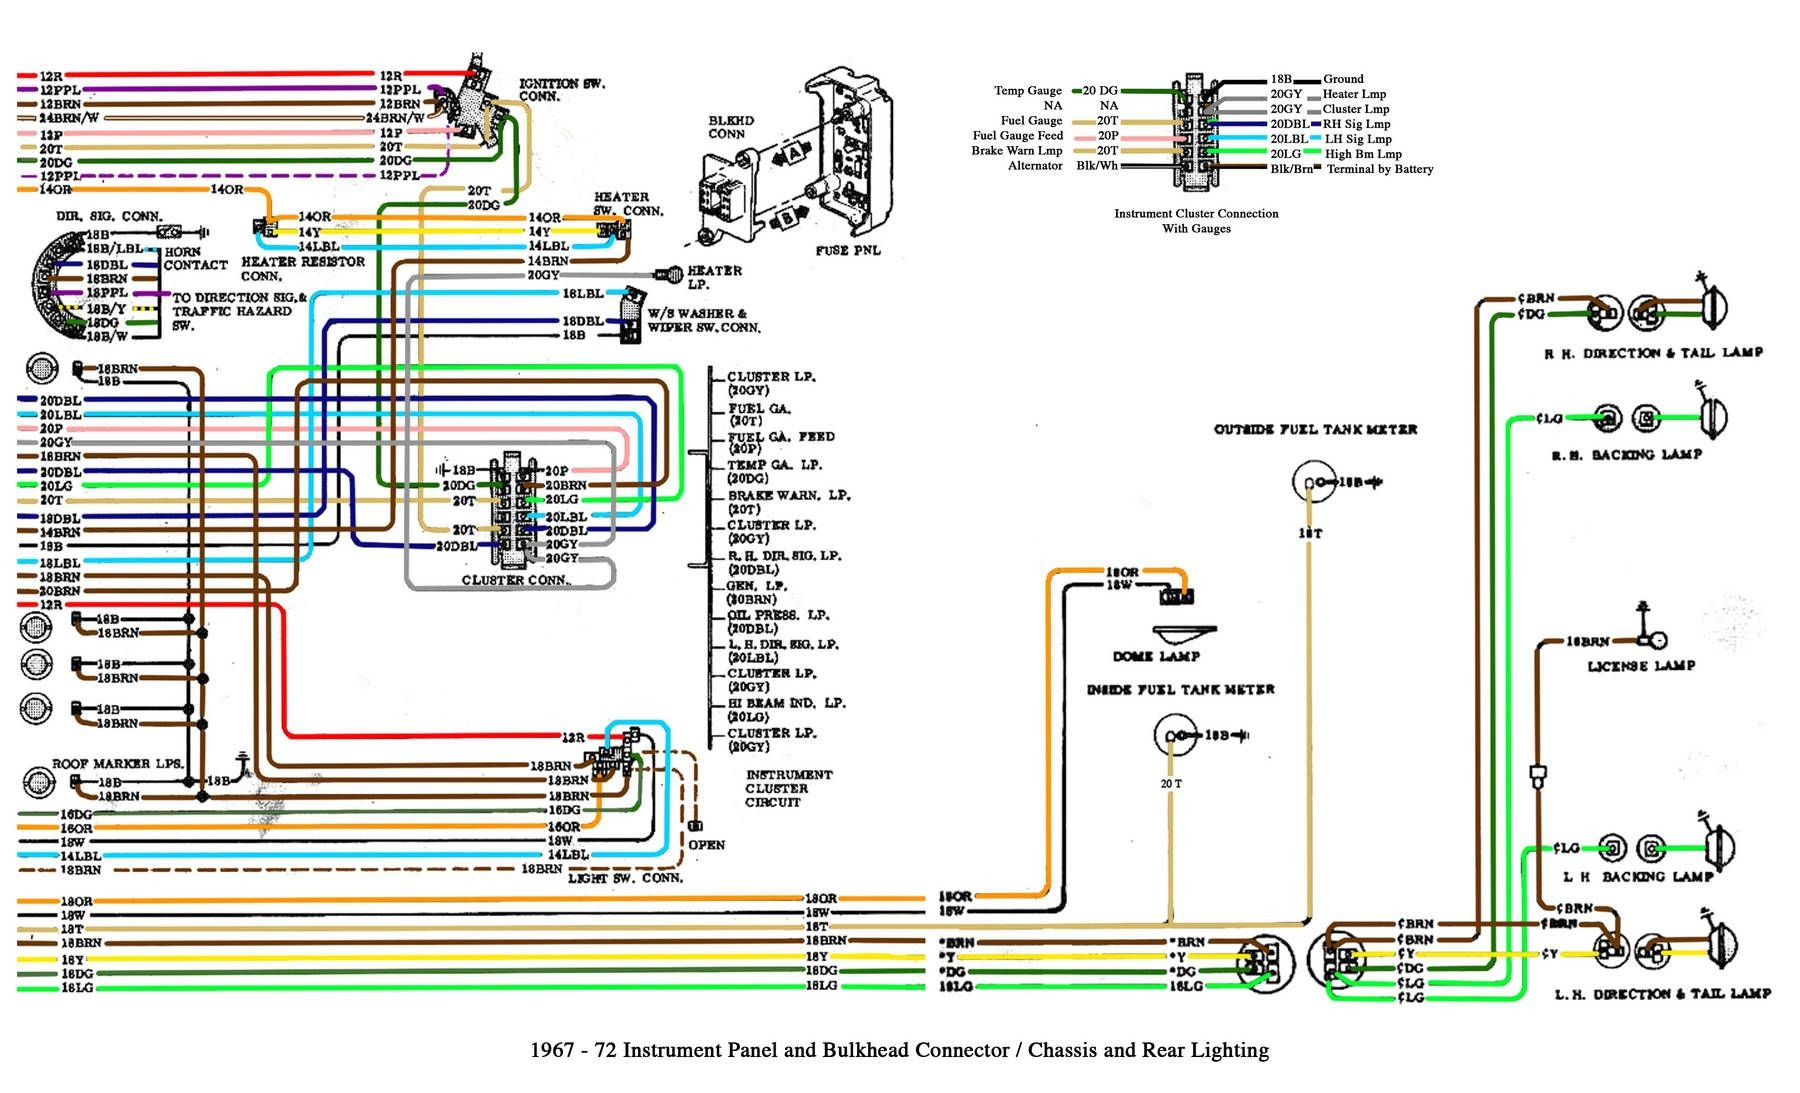 85 Chevy Truck Wiring Diagram Best Wiring Diagrams for Chevy Trucks Ideas Everything You Need to Of 85 Chevy Truck Wiring Diagram